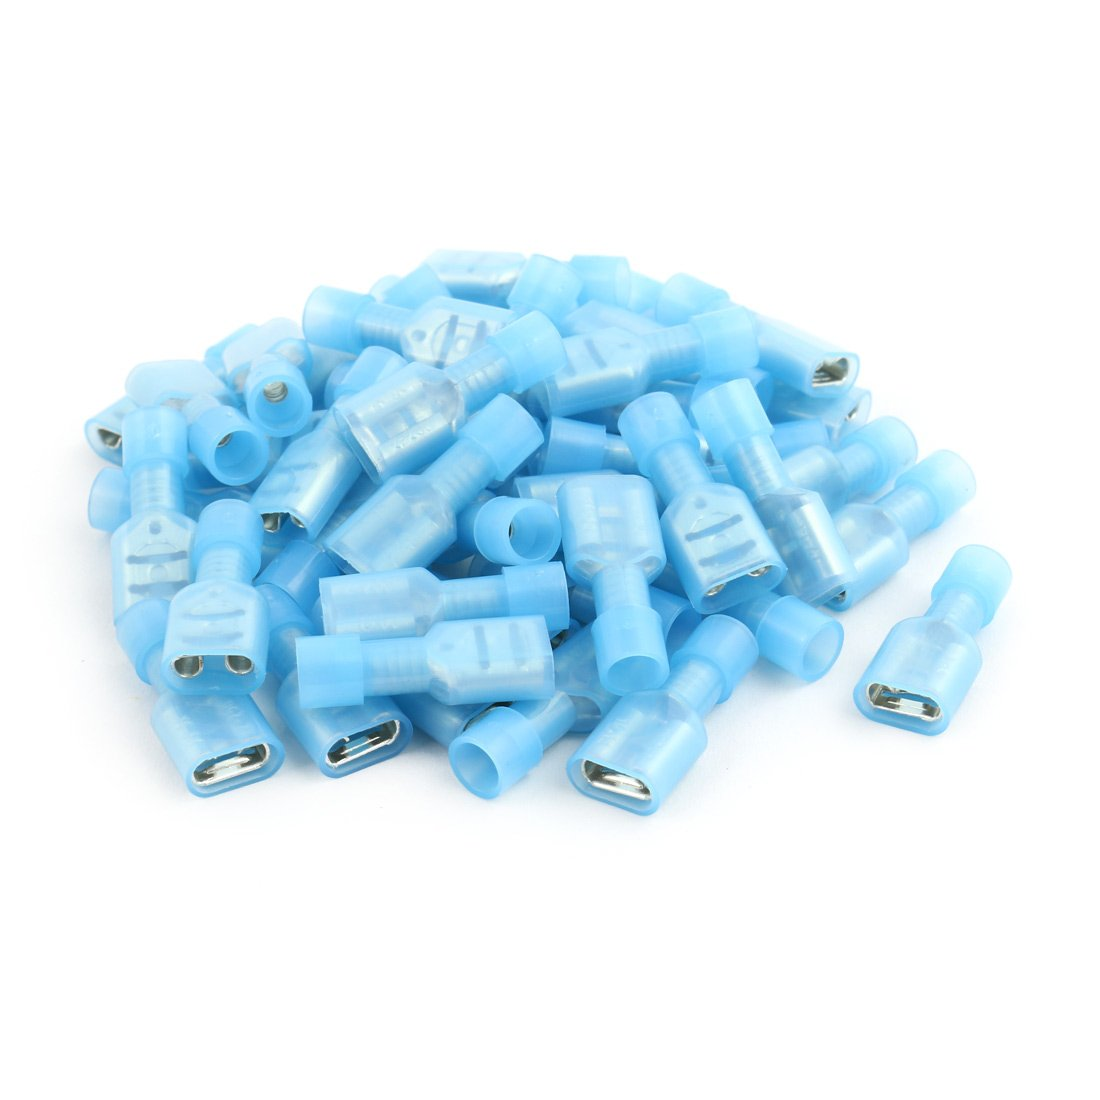 uxcell 50Pcs 16-14AWG Wire Insulated 6.3mm Female Spade Crimp Terminal Connector Blue a17050300ux0410